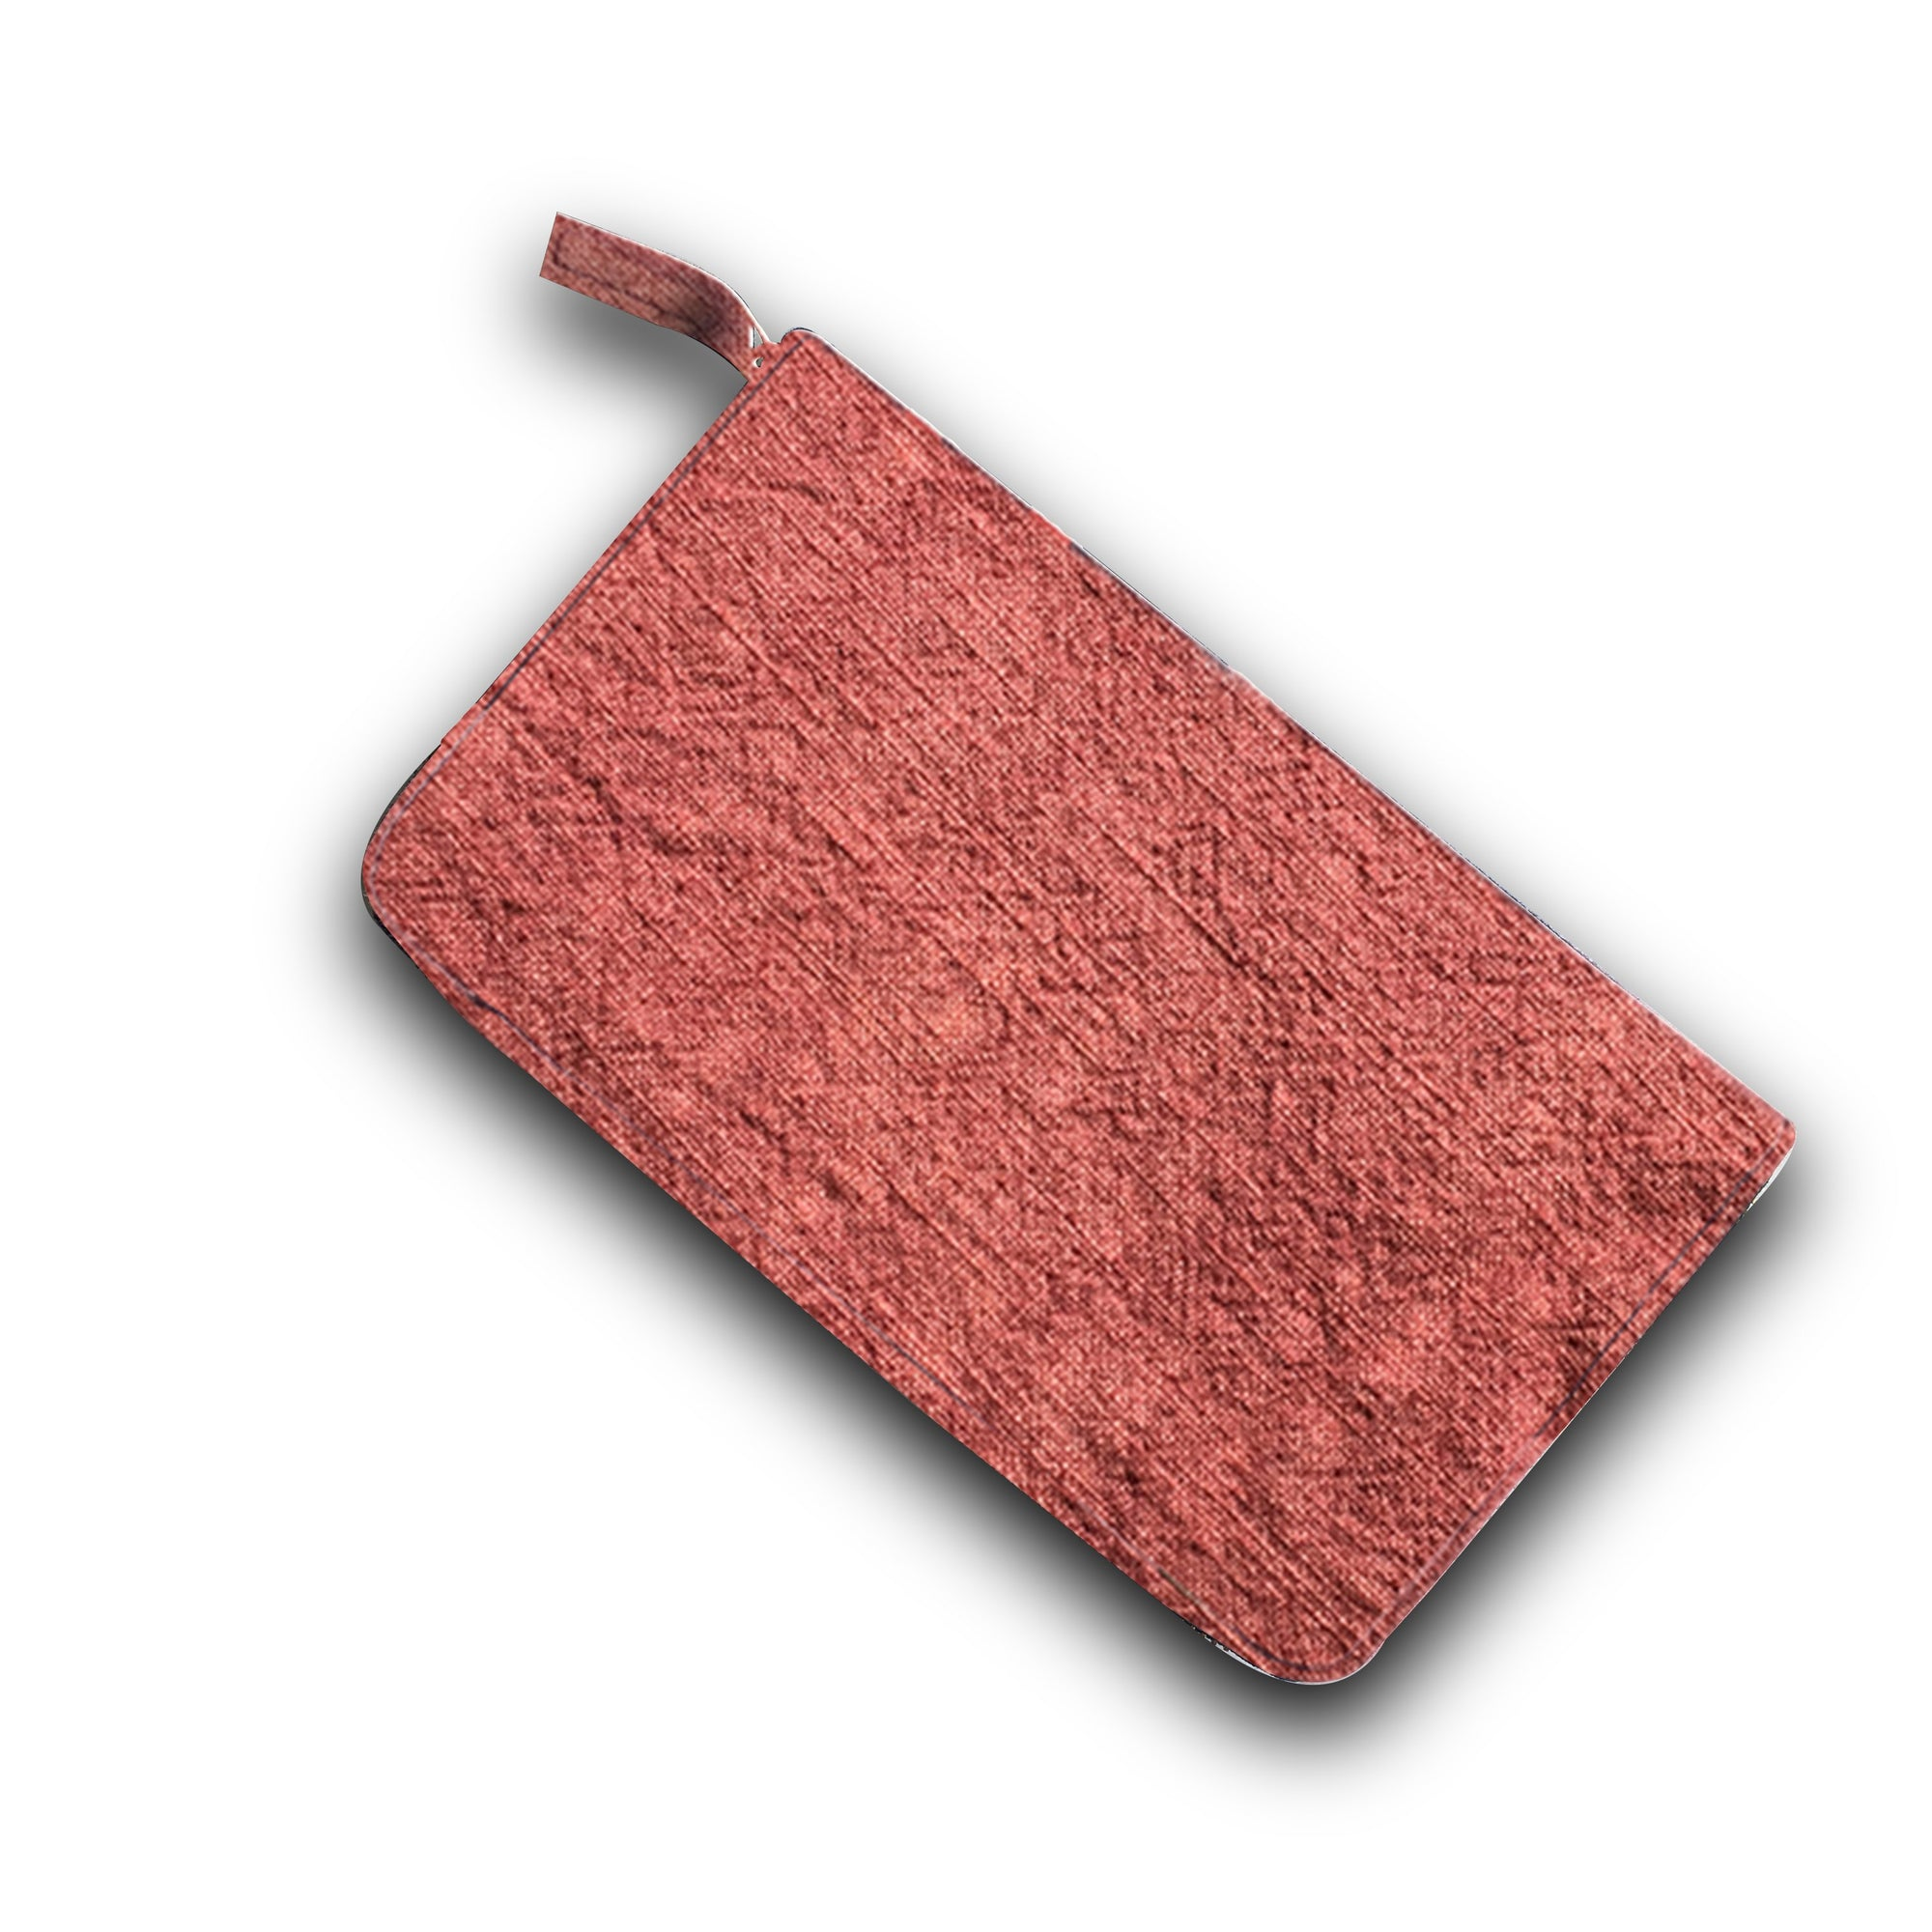 Travel Clutch in Organic Dyed Plant Based Material